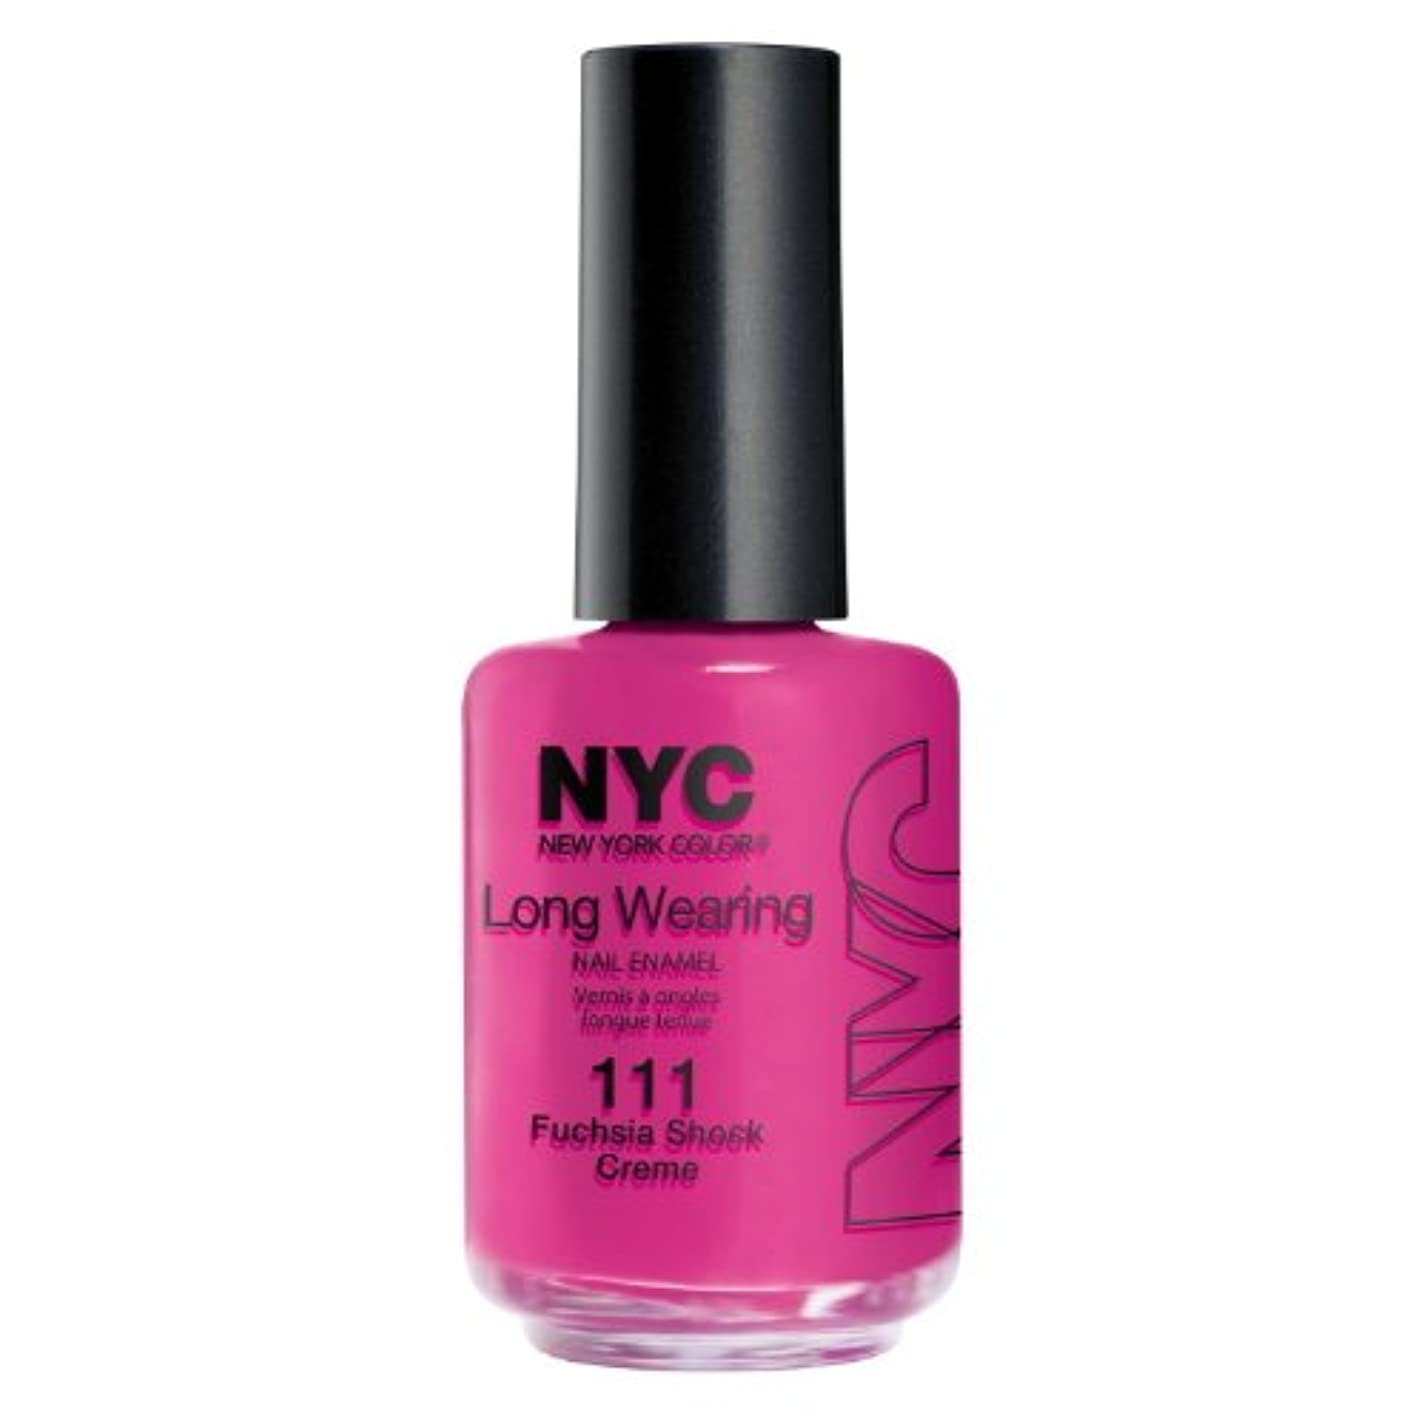 シーボードセラフ脚(6 Pack) NYC Long Wearing Nail Enamel - Fuchisia Shock Creme (並行輸入品)